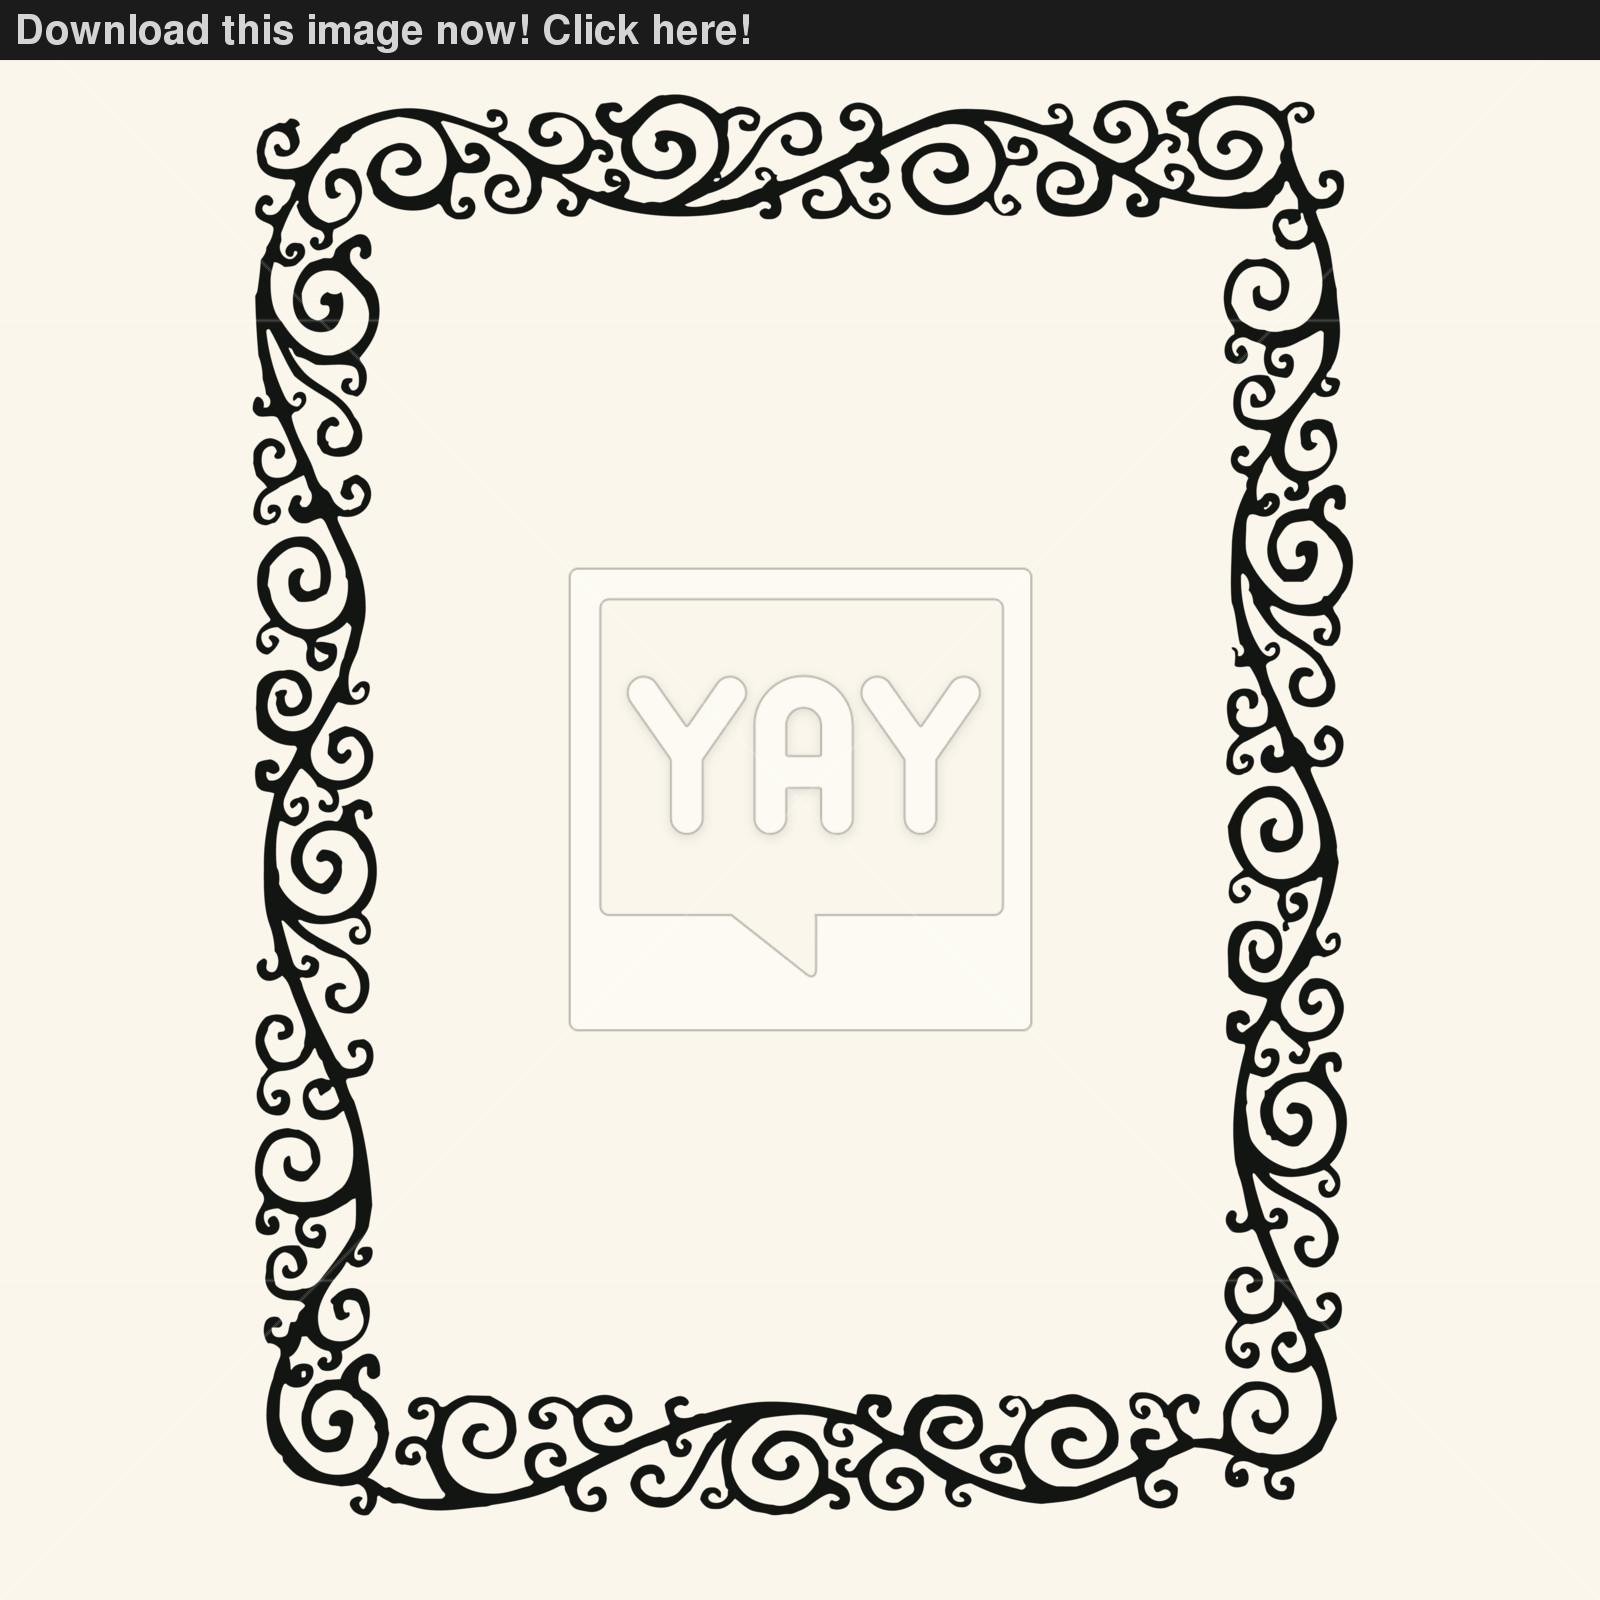 Swirl Vector Borders and Frames